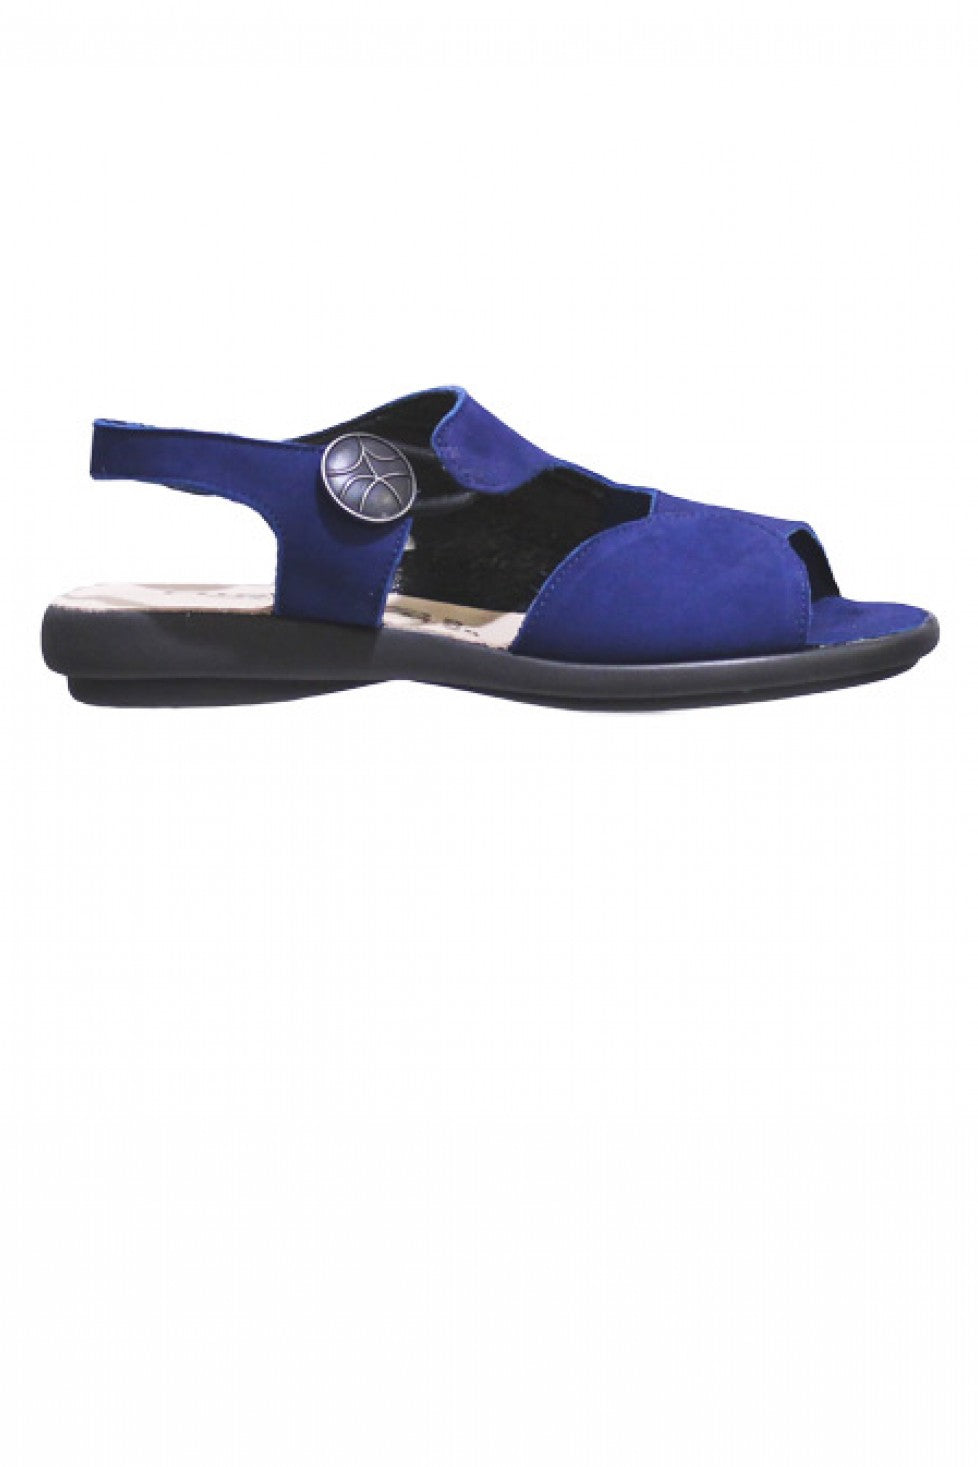 Indigo Hirica Sandal Style and Grace